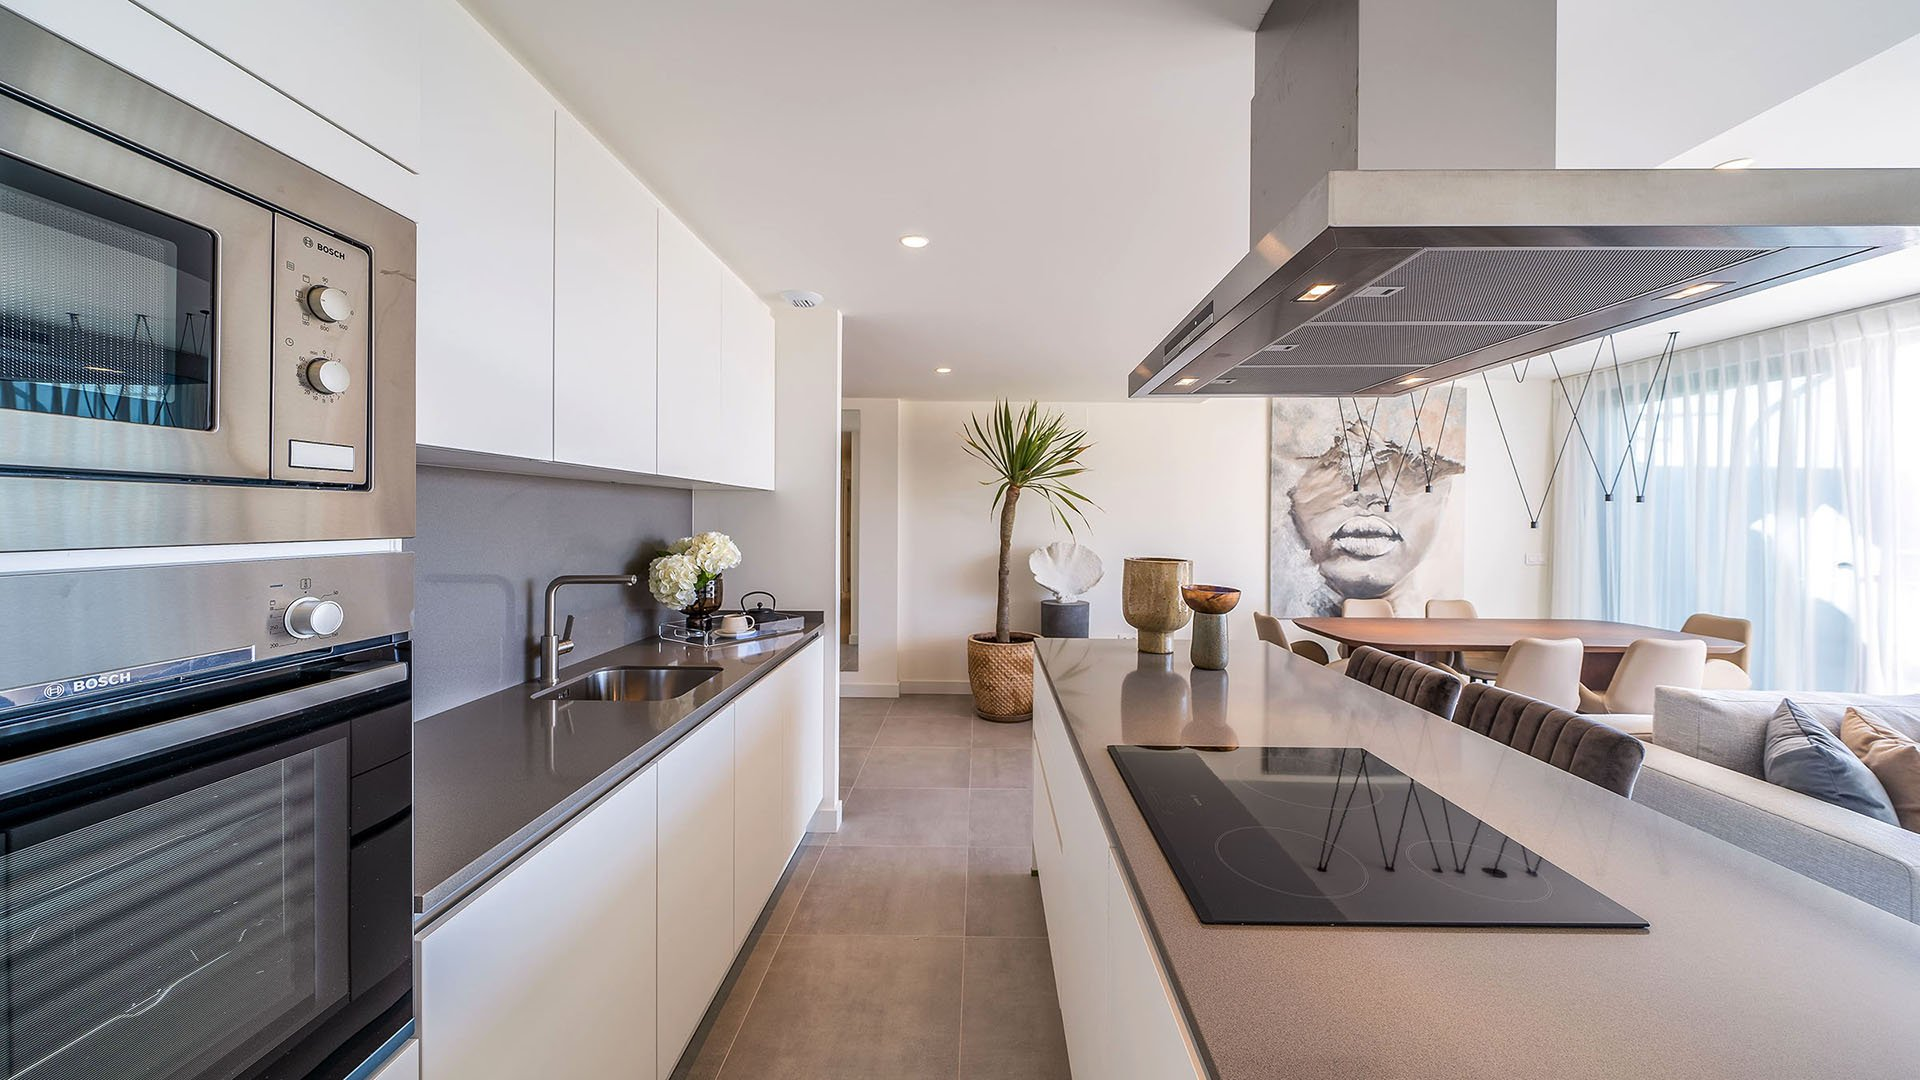 Oasis 325: Well priced penthouses in the heart of the Costa del Sol